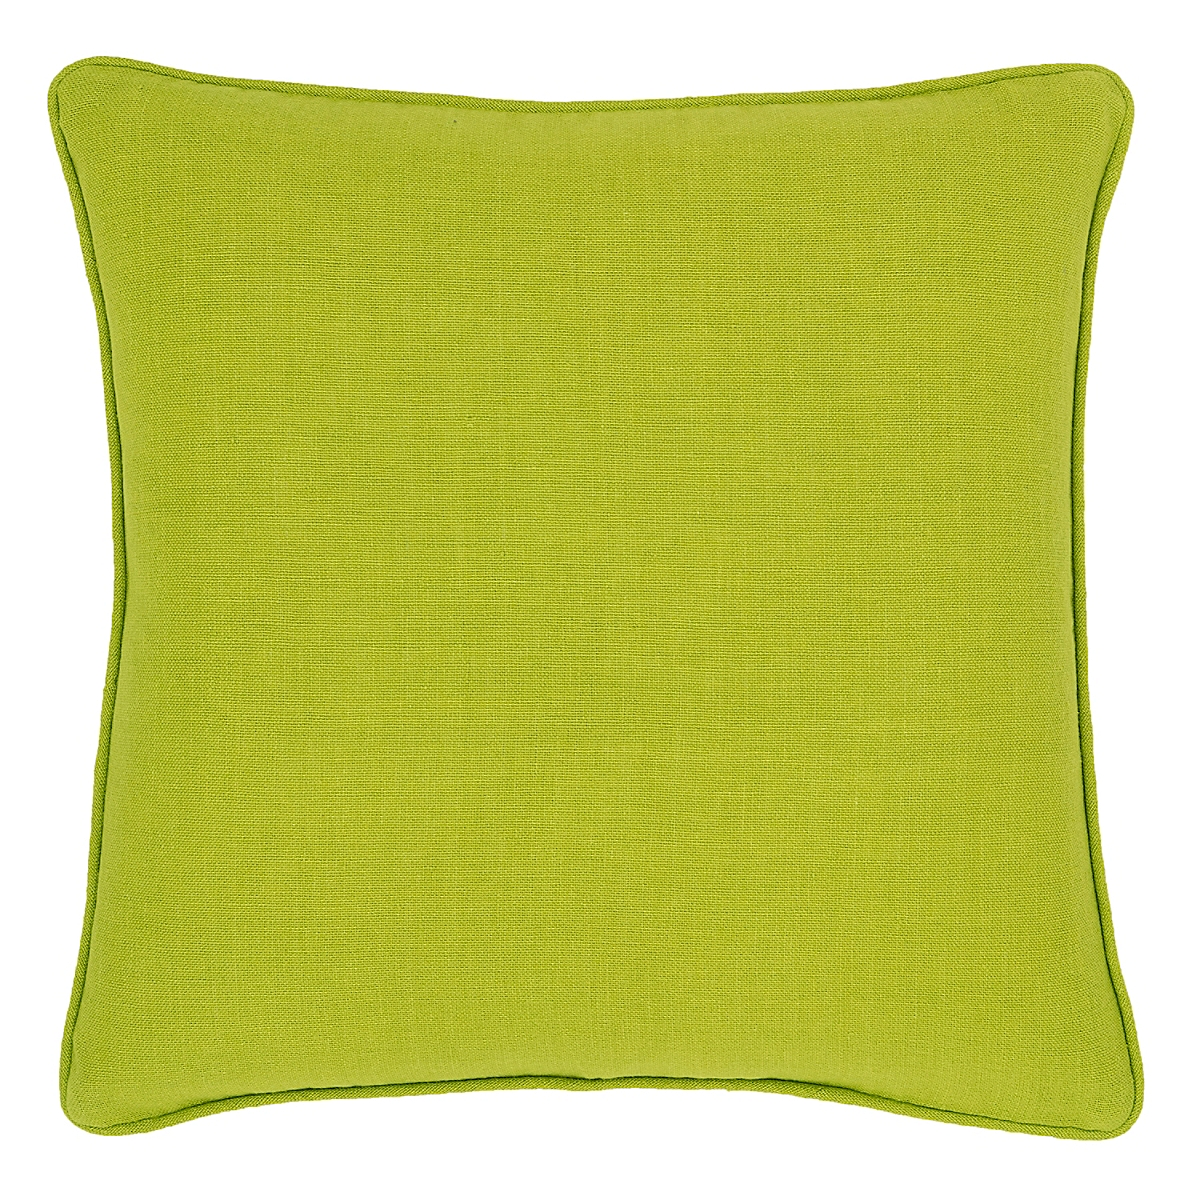 Stone Washed Linen Green Decorative Pillow